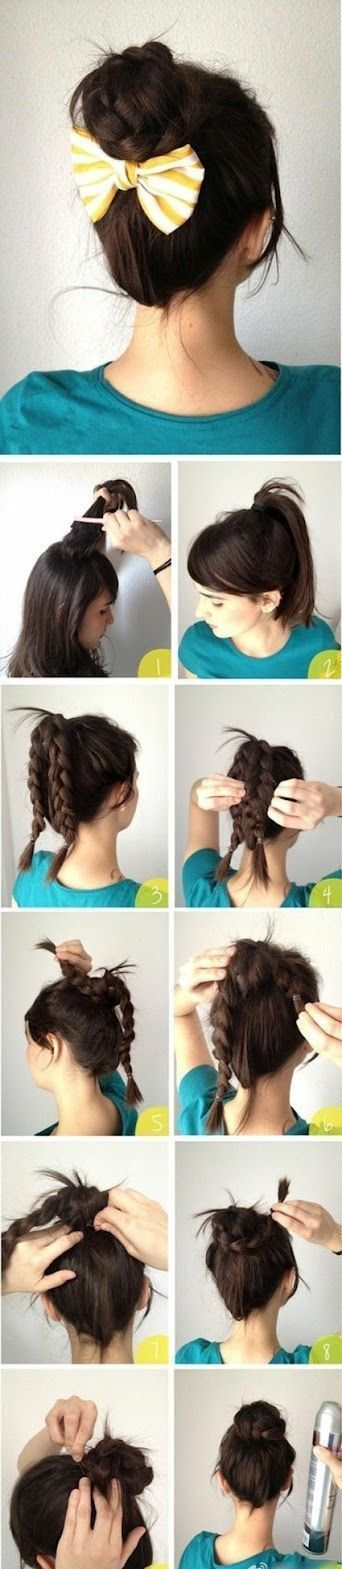 what style can i do with hair creative hairstyles that you can easily do at home 27 7598